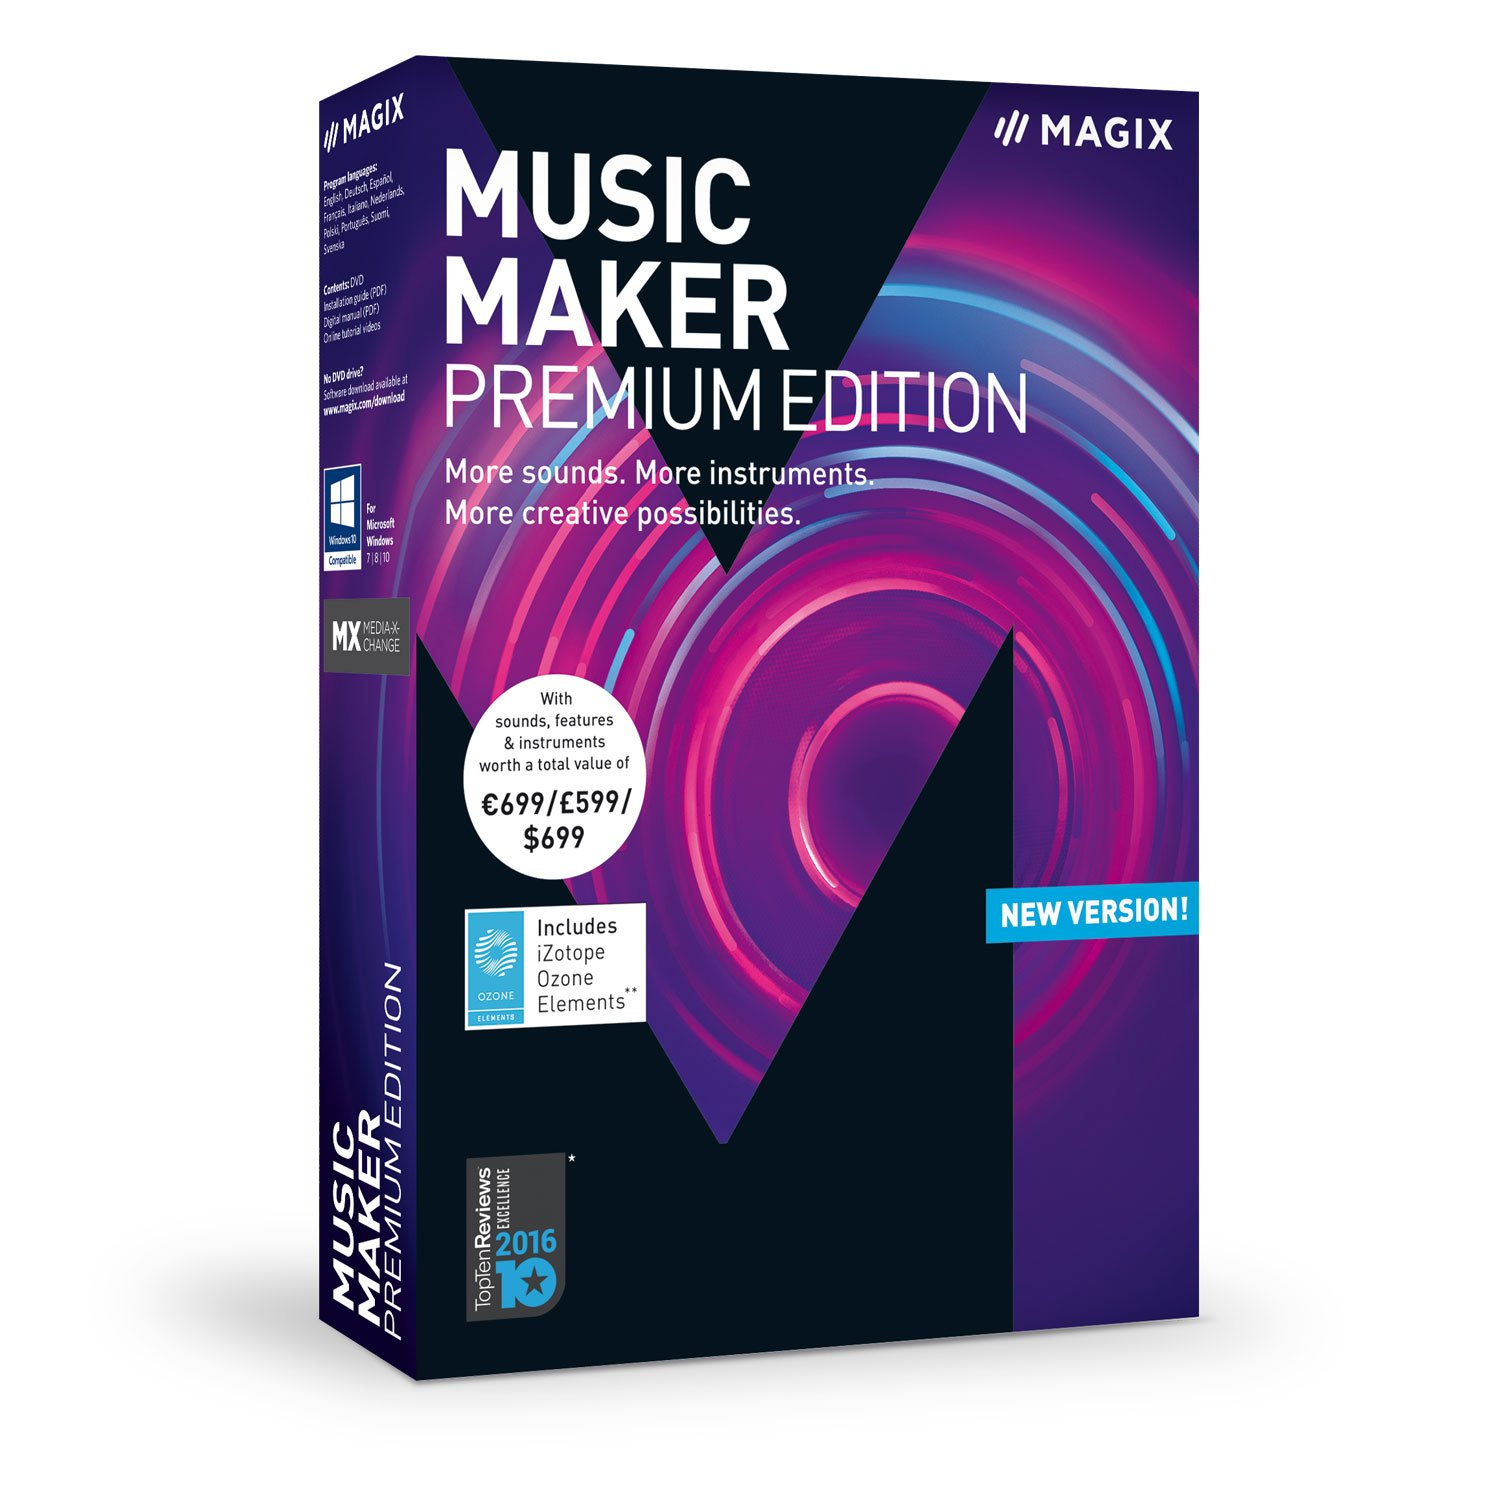 MAGIX Music Maker - 2018 Premium Edition - The audio software with more sounds, instruments and creative options by MAGIX